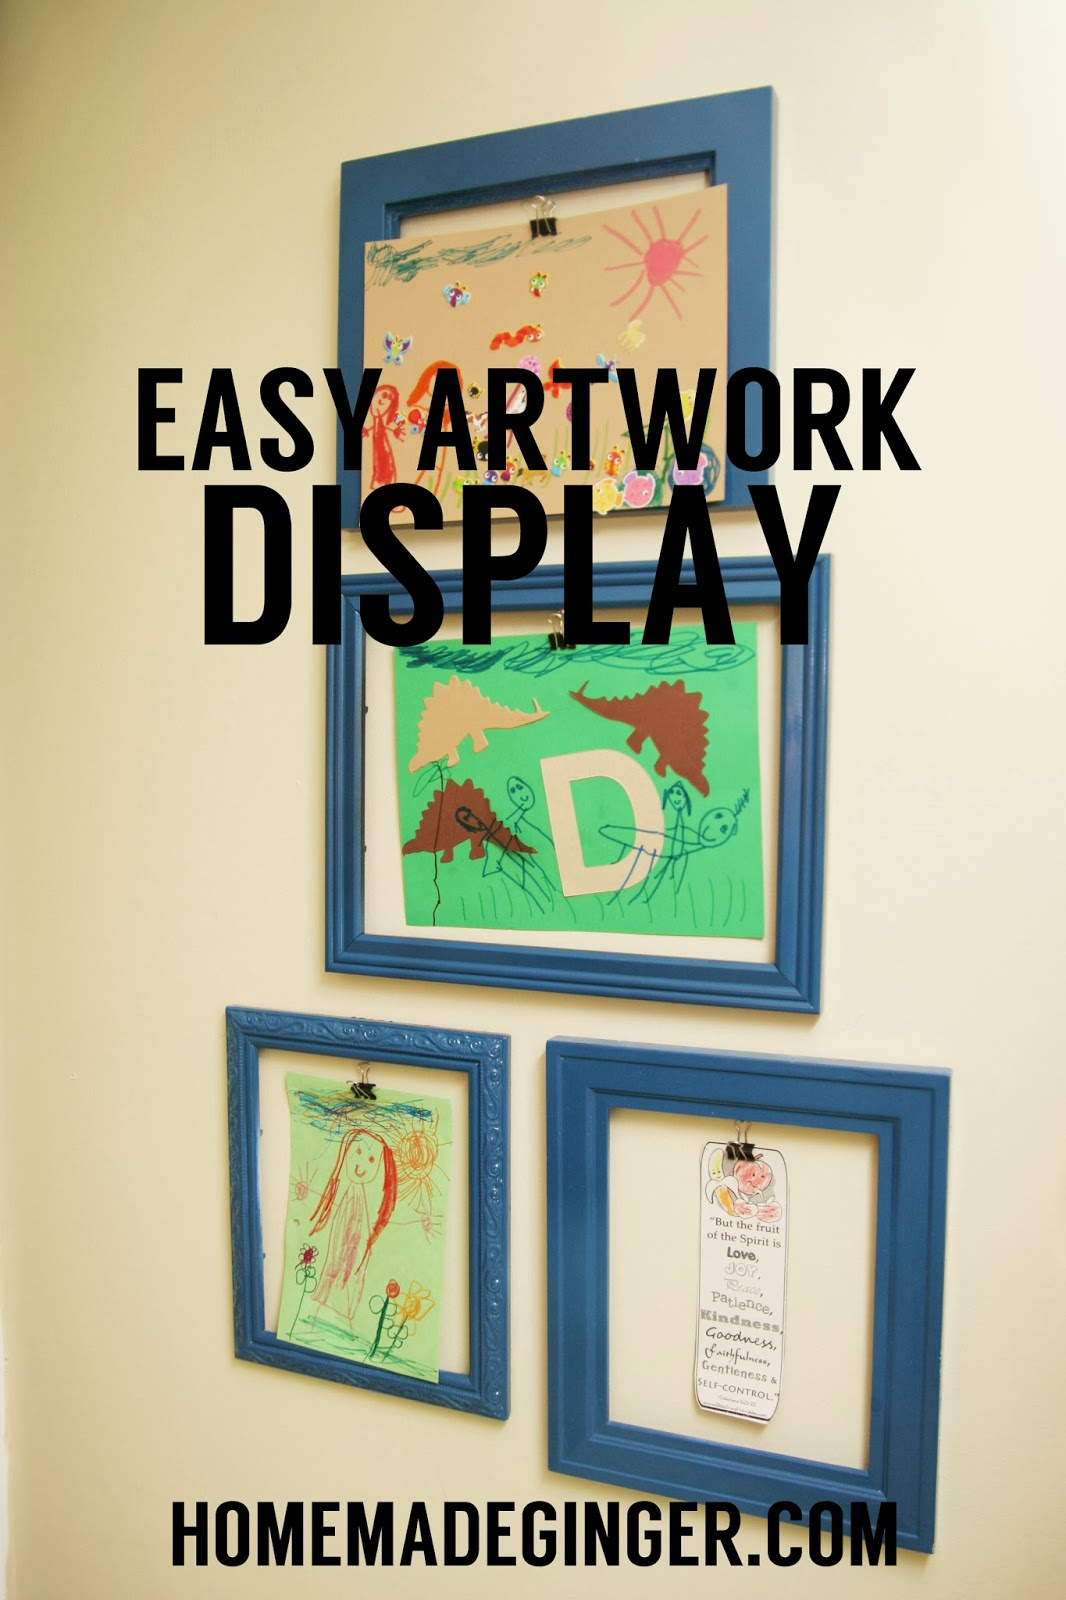 Easy Artwork Display - Homemade Ginger